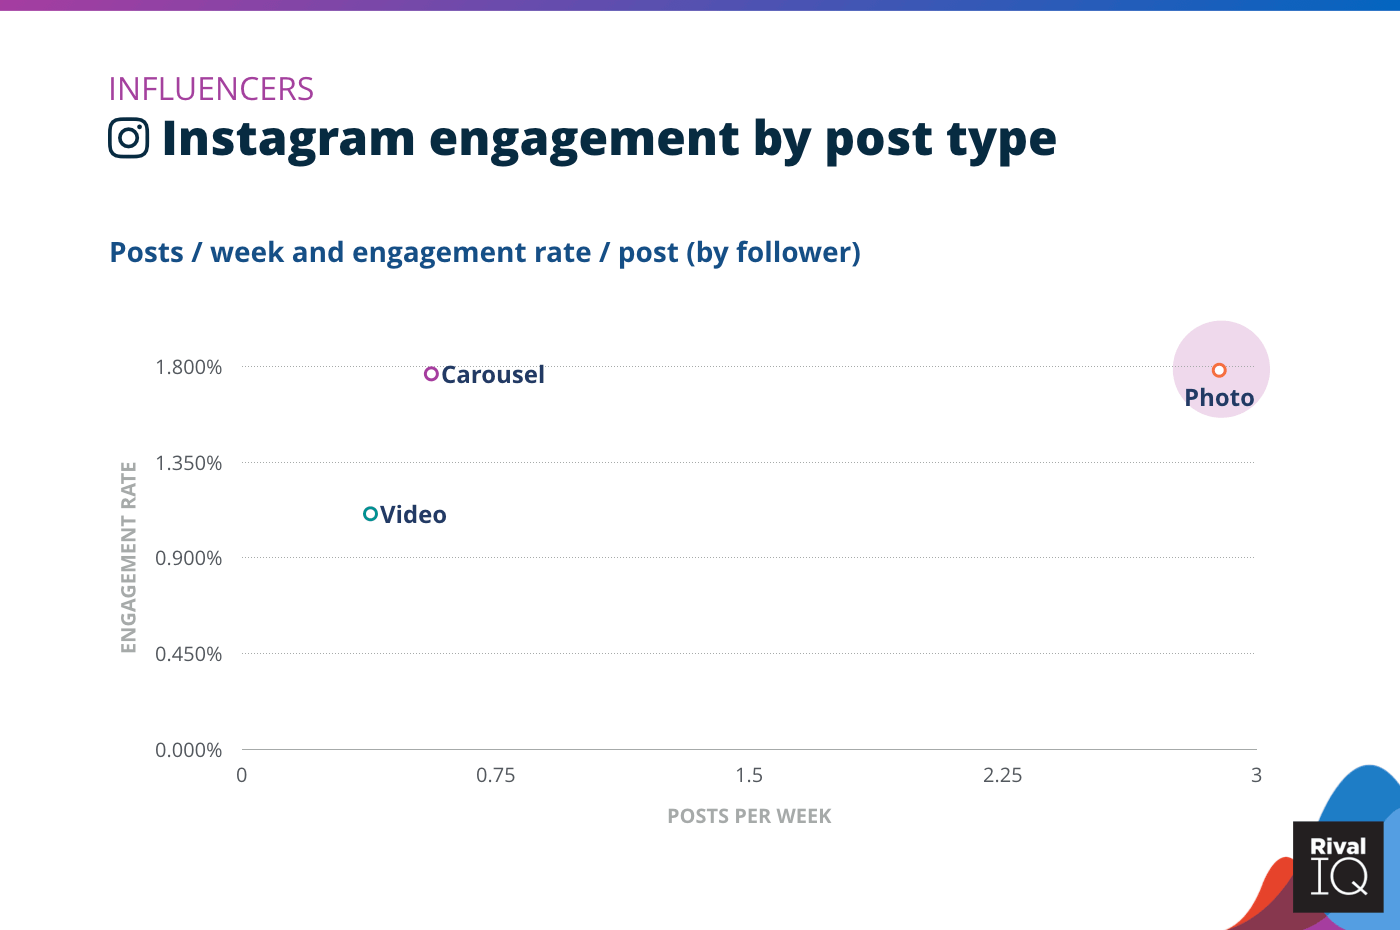 Chart of Instagram posts per week and engagement rate by post type, Influencers